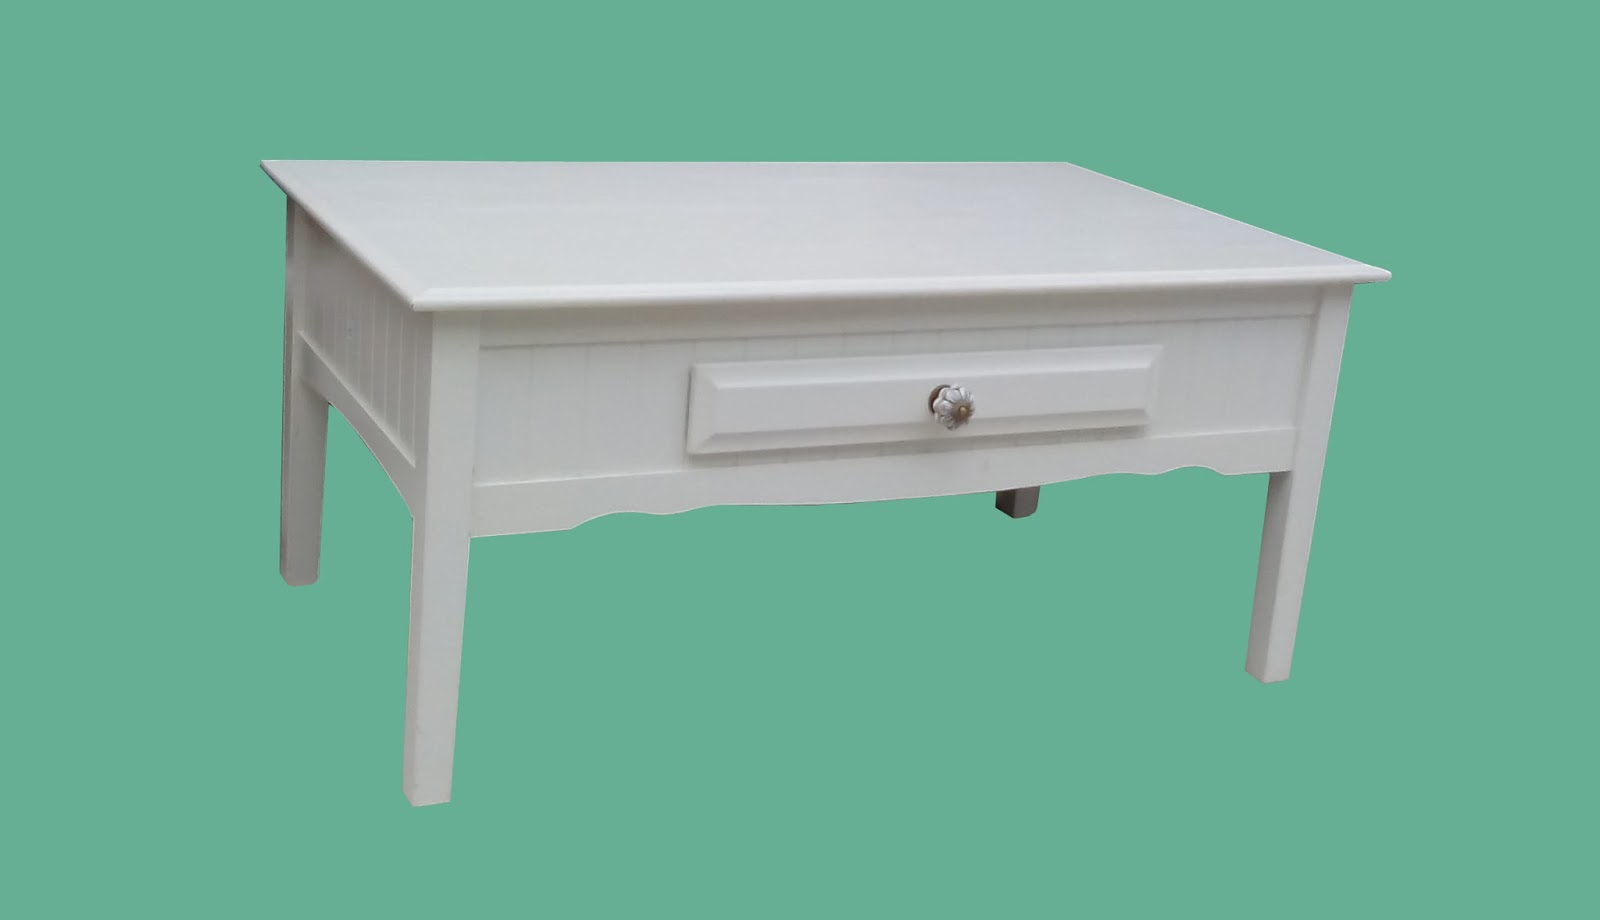 Uhuru Furniture Collectibles White Painted Coffee Table 75 55 Sold